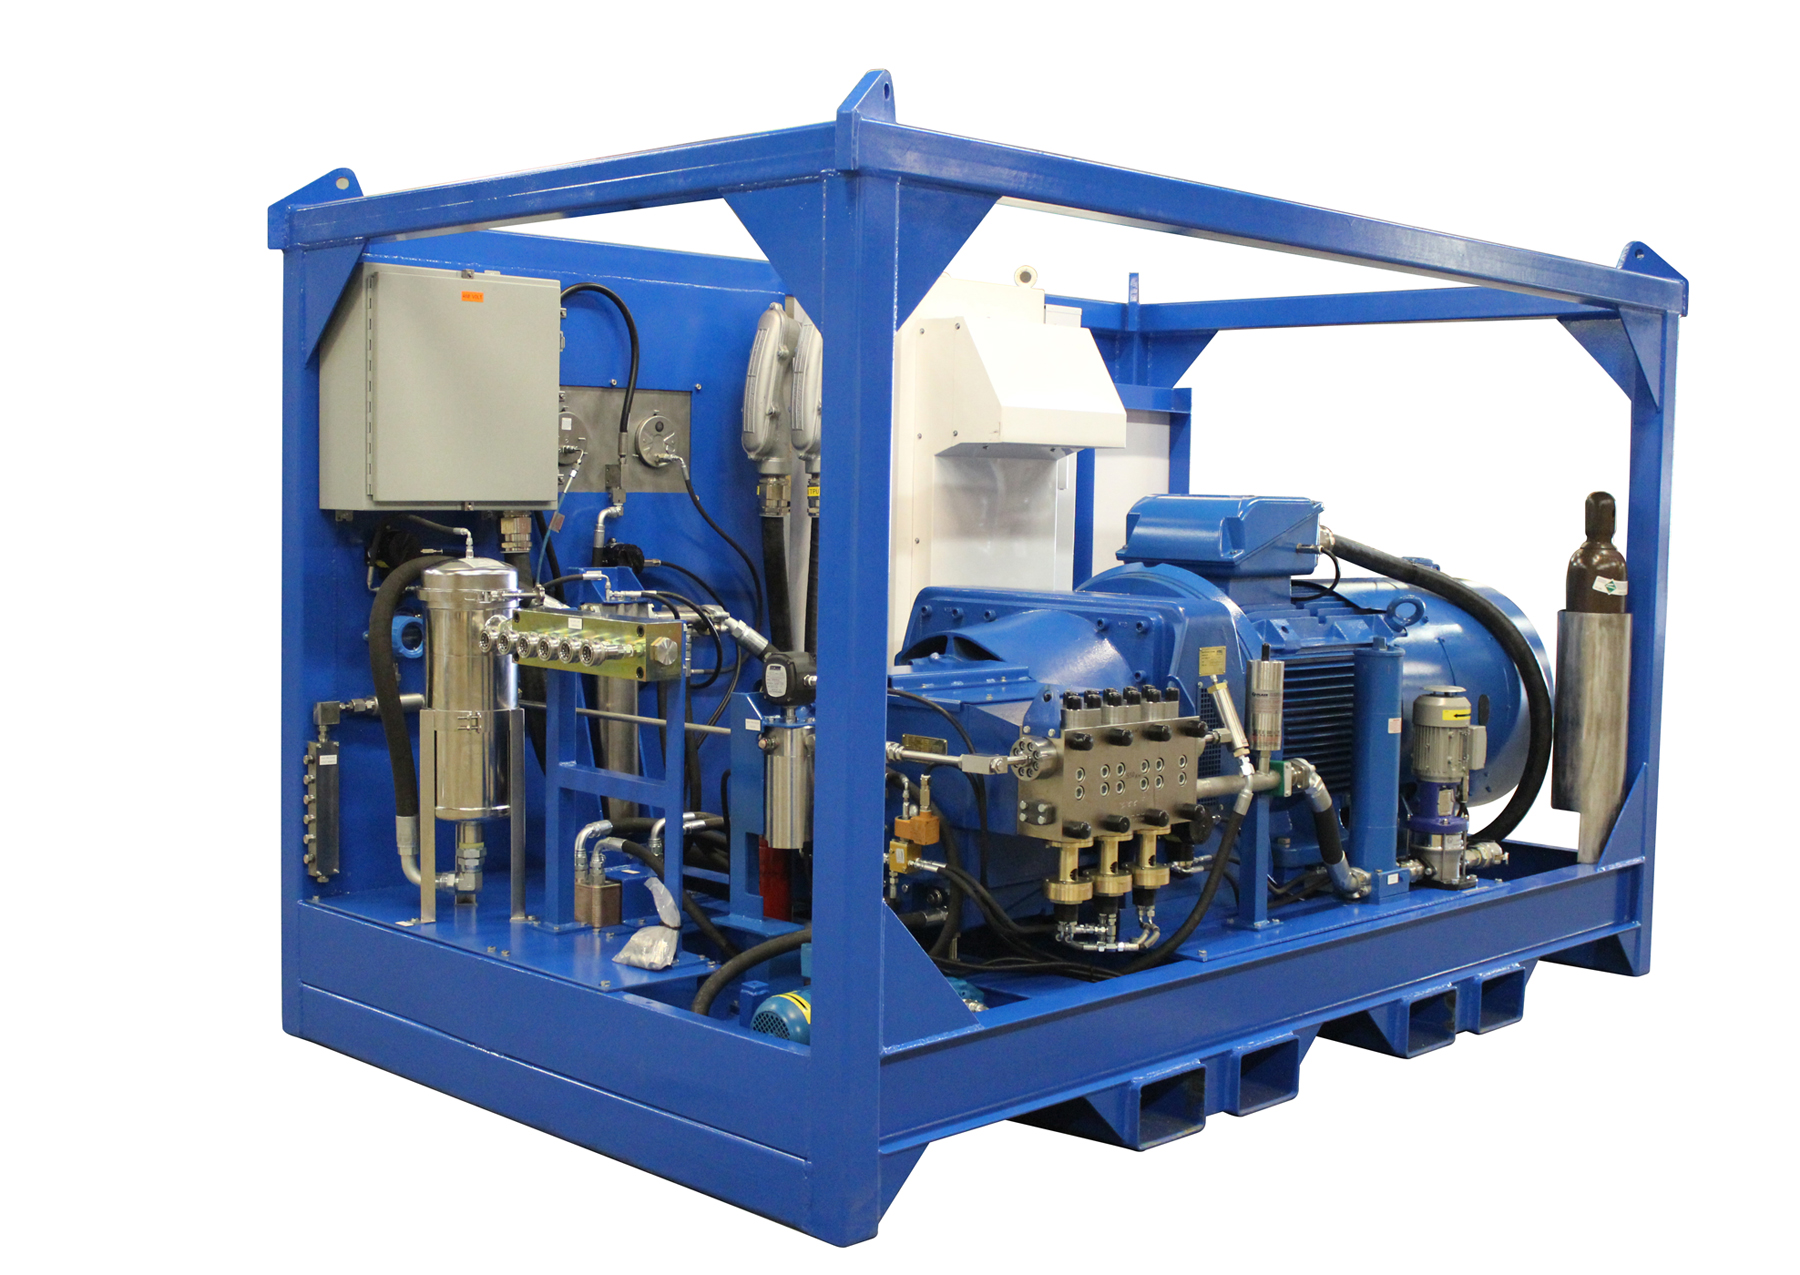 Umbilical test rig improves efficiency of testing & commissioning